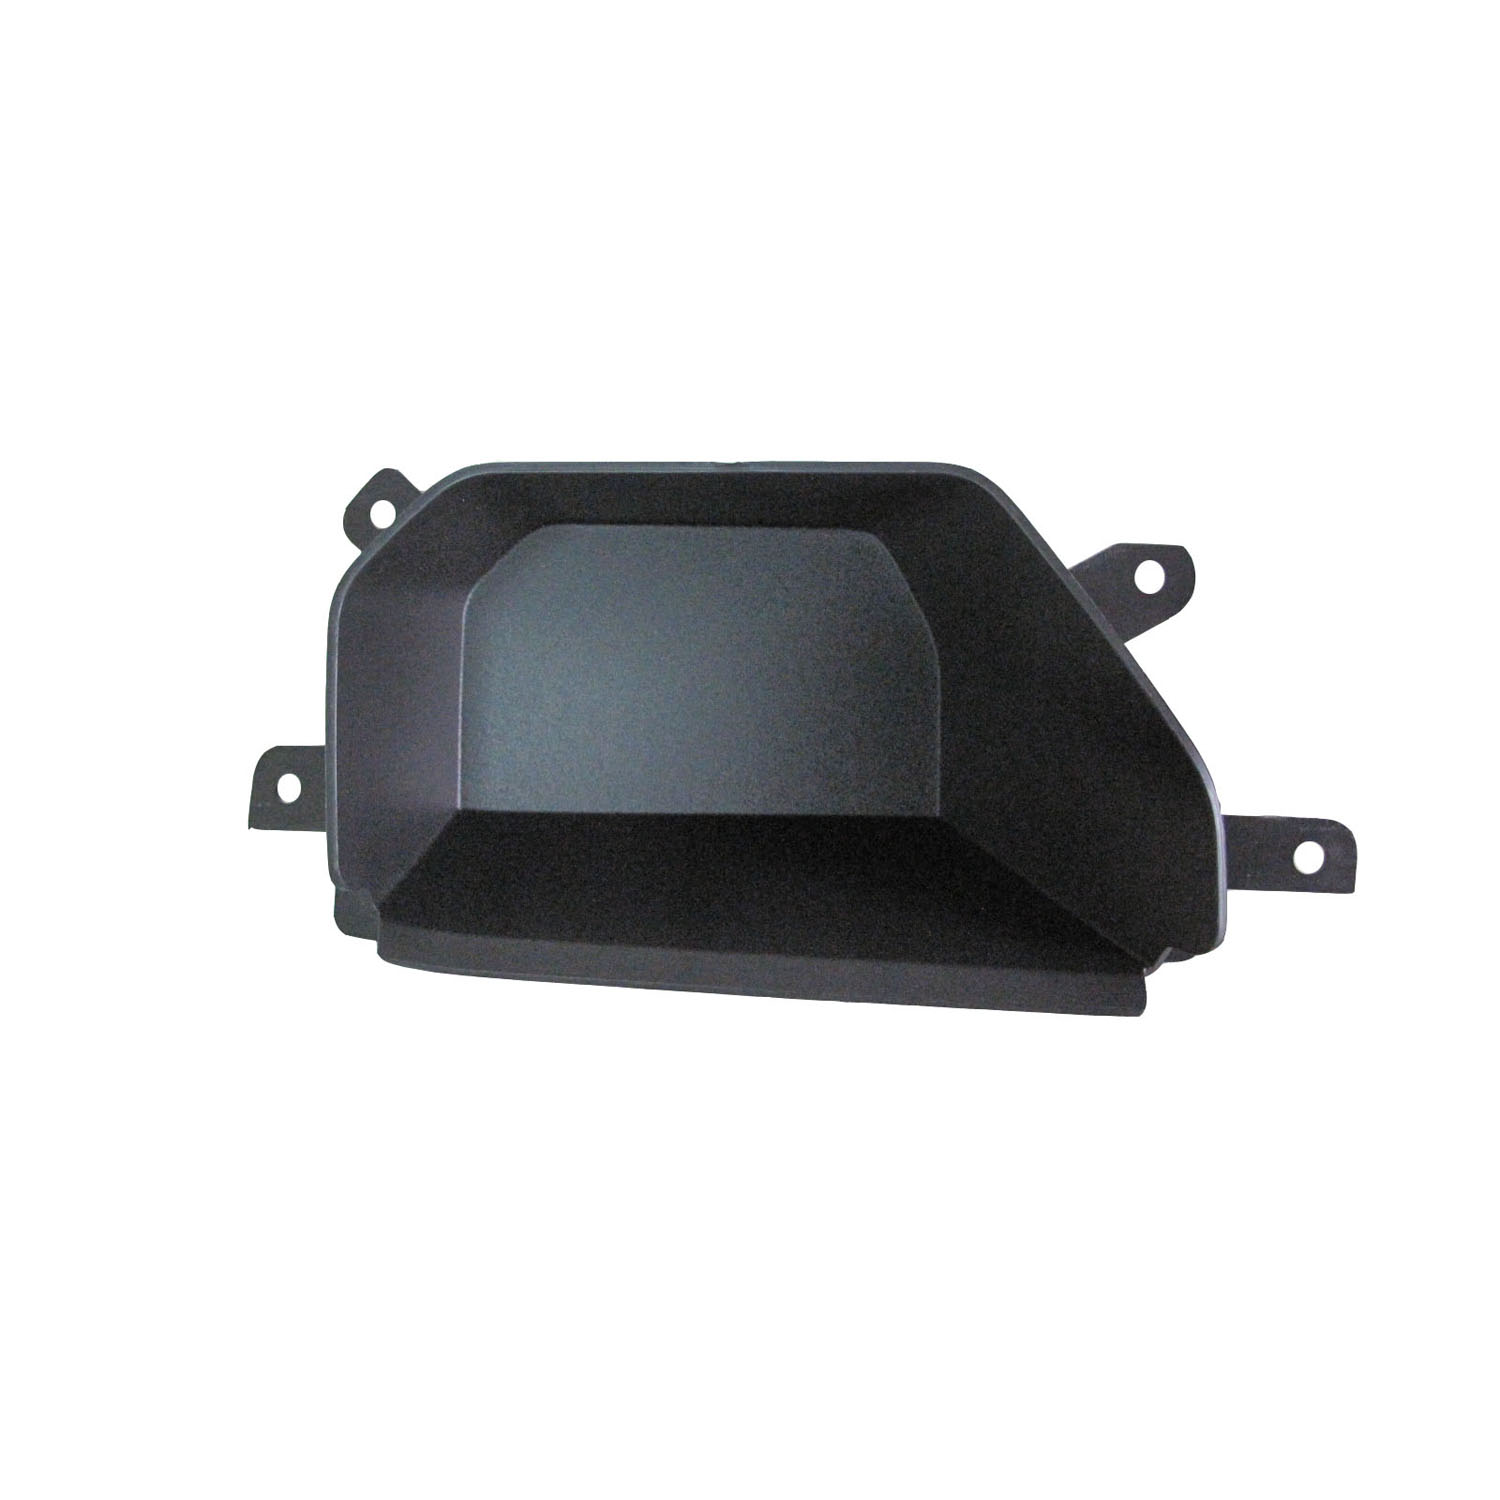 NEW RIGHT TOW HOOK HOLE COVER FOR 2014-2015 GMC SIERRA 1500 GM1028105